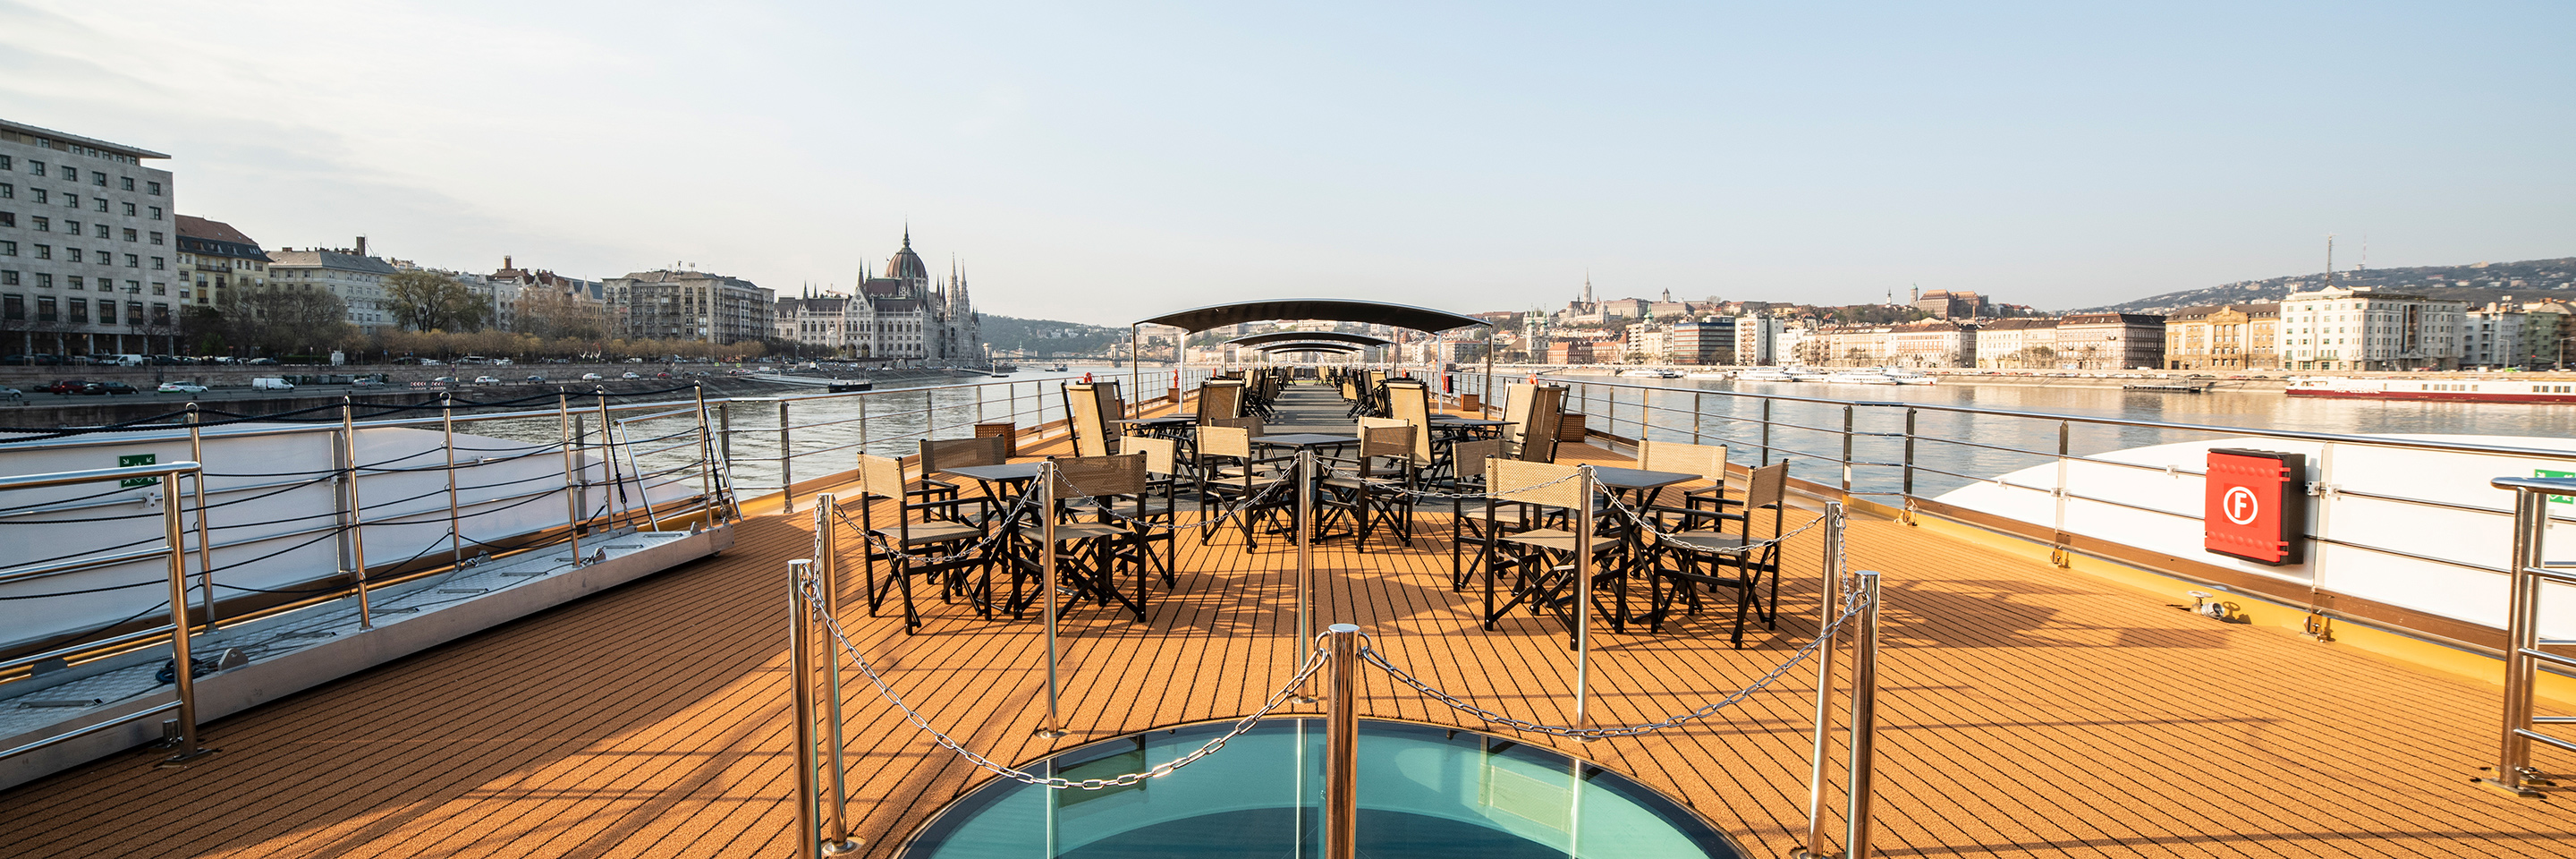 Skydeck in Budapest